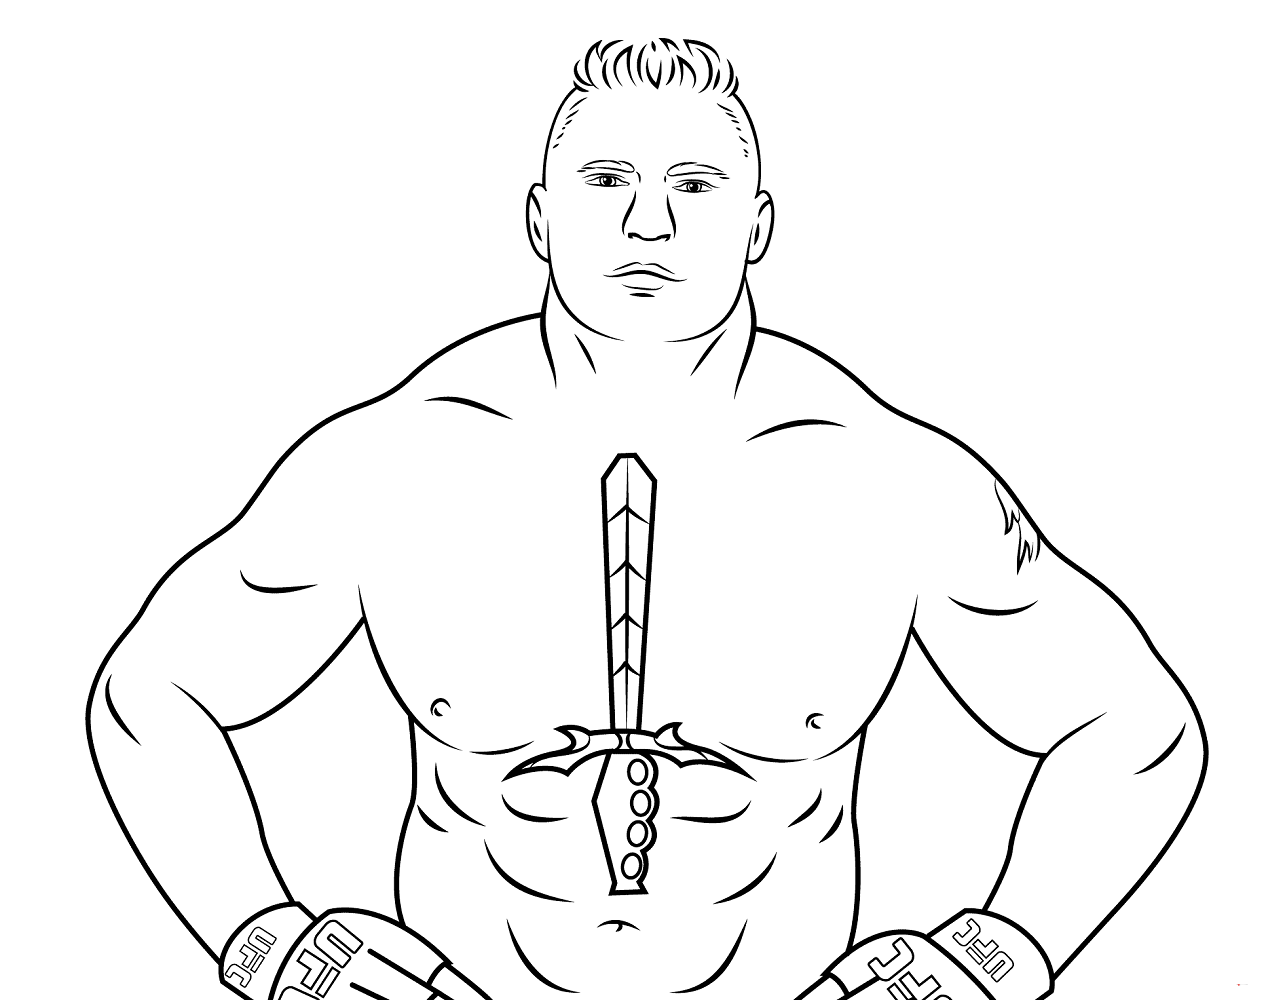 Free Printable World Wrestling Entertainment Or Wwe Coloring Pages